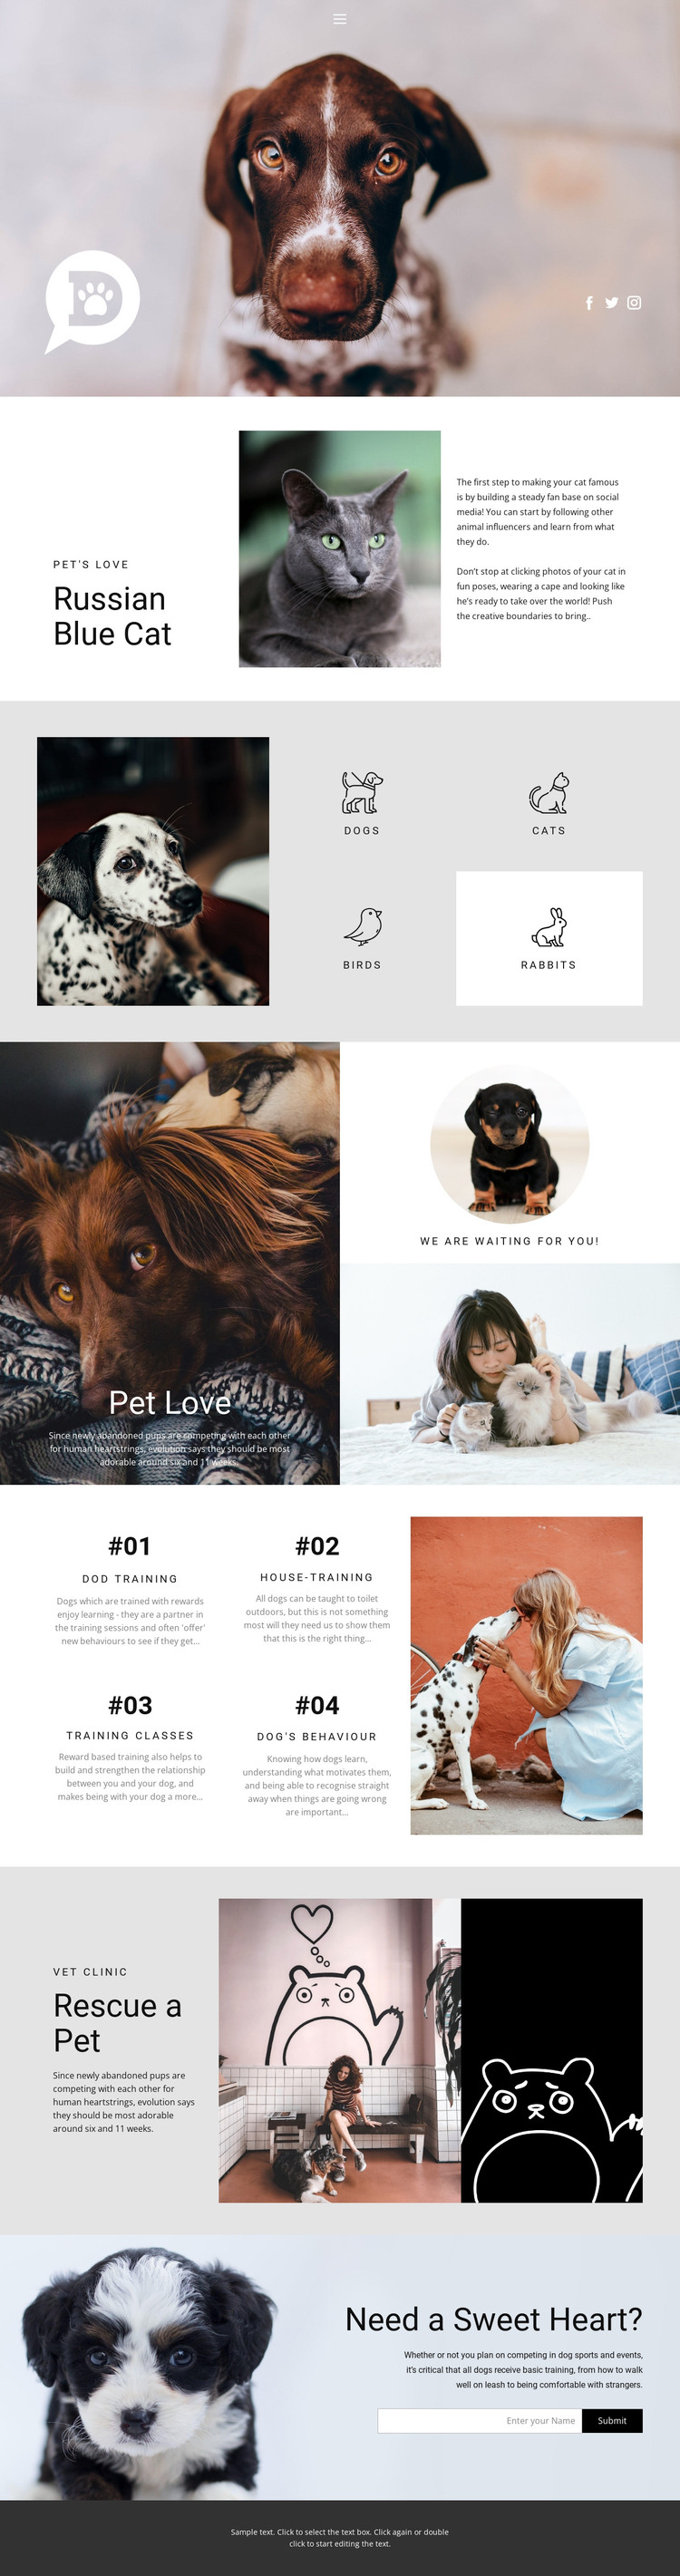 Care for pets and animals WordPress Theme